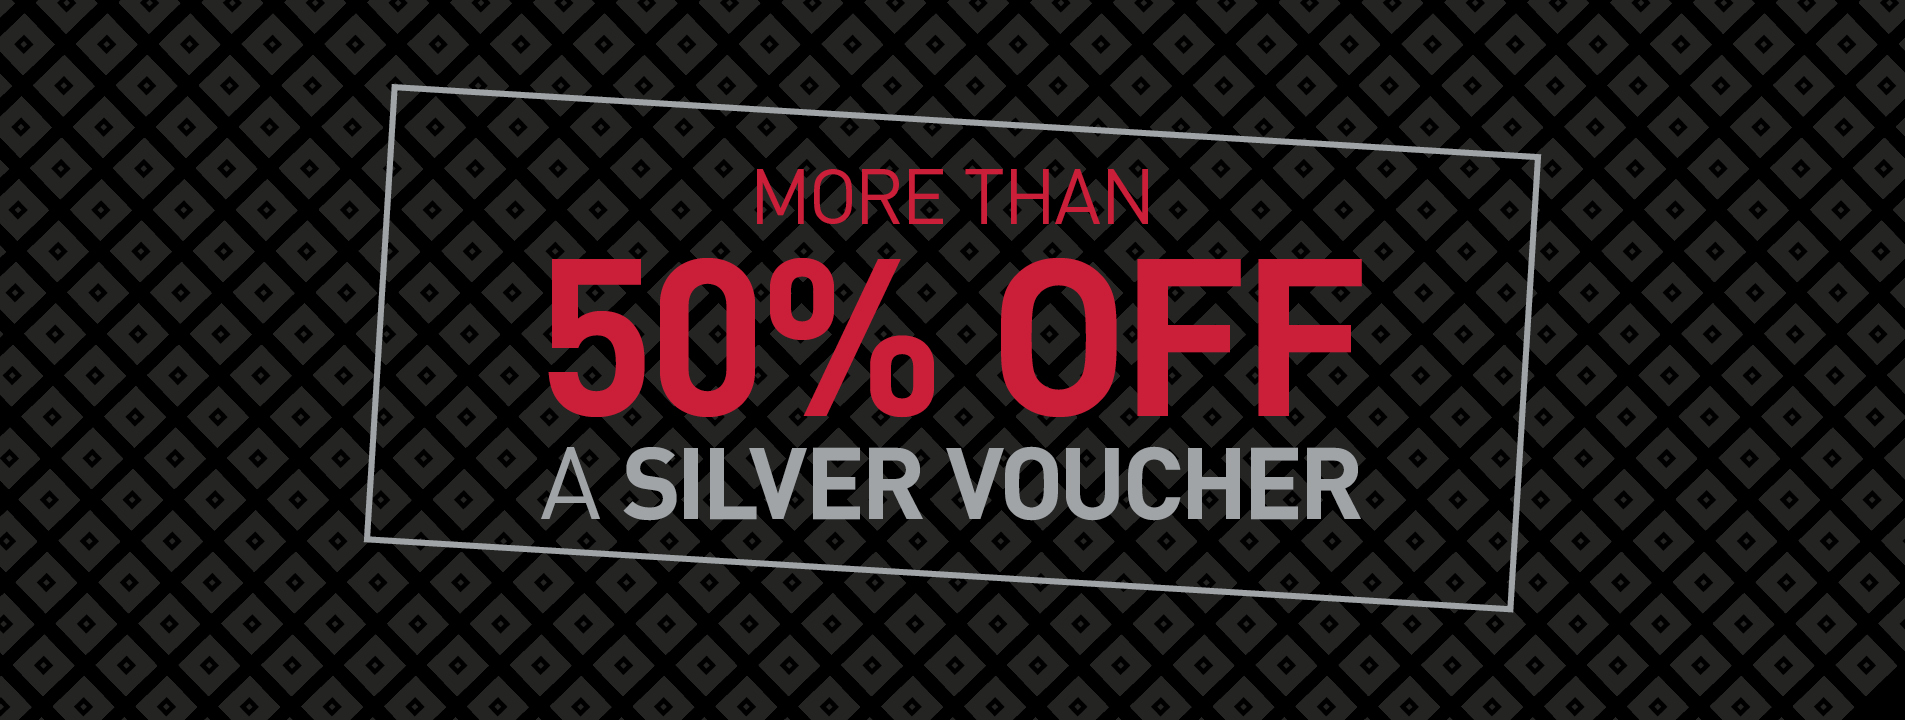 PG SILVER- MORE THAN 50% OFF